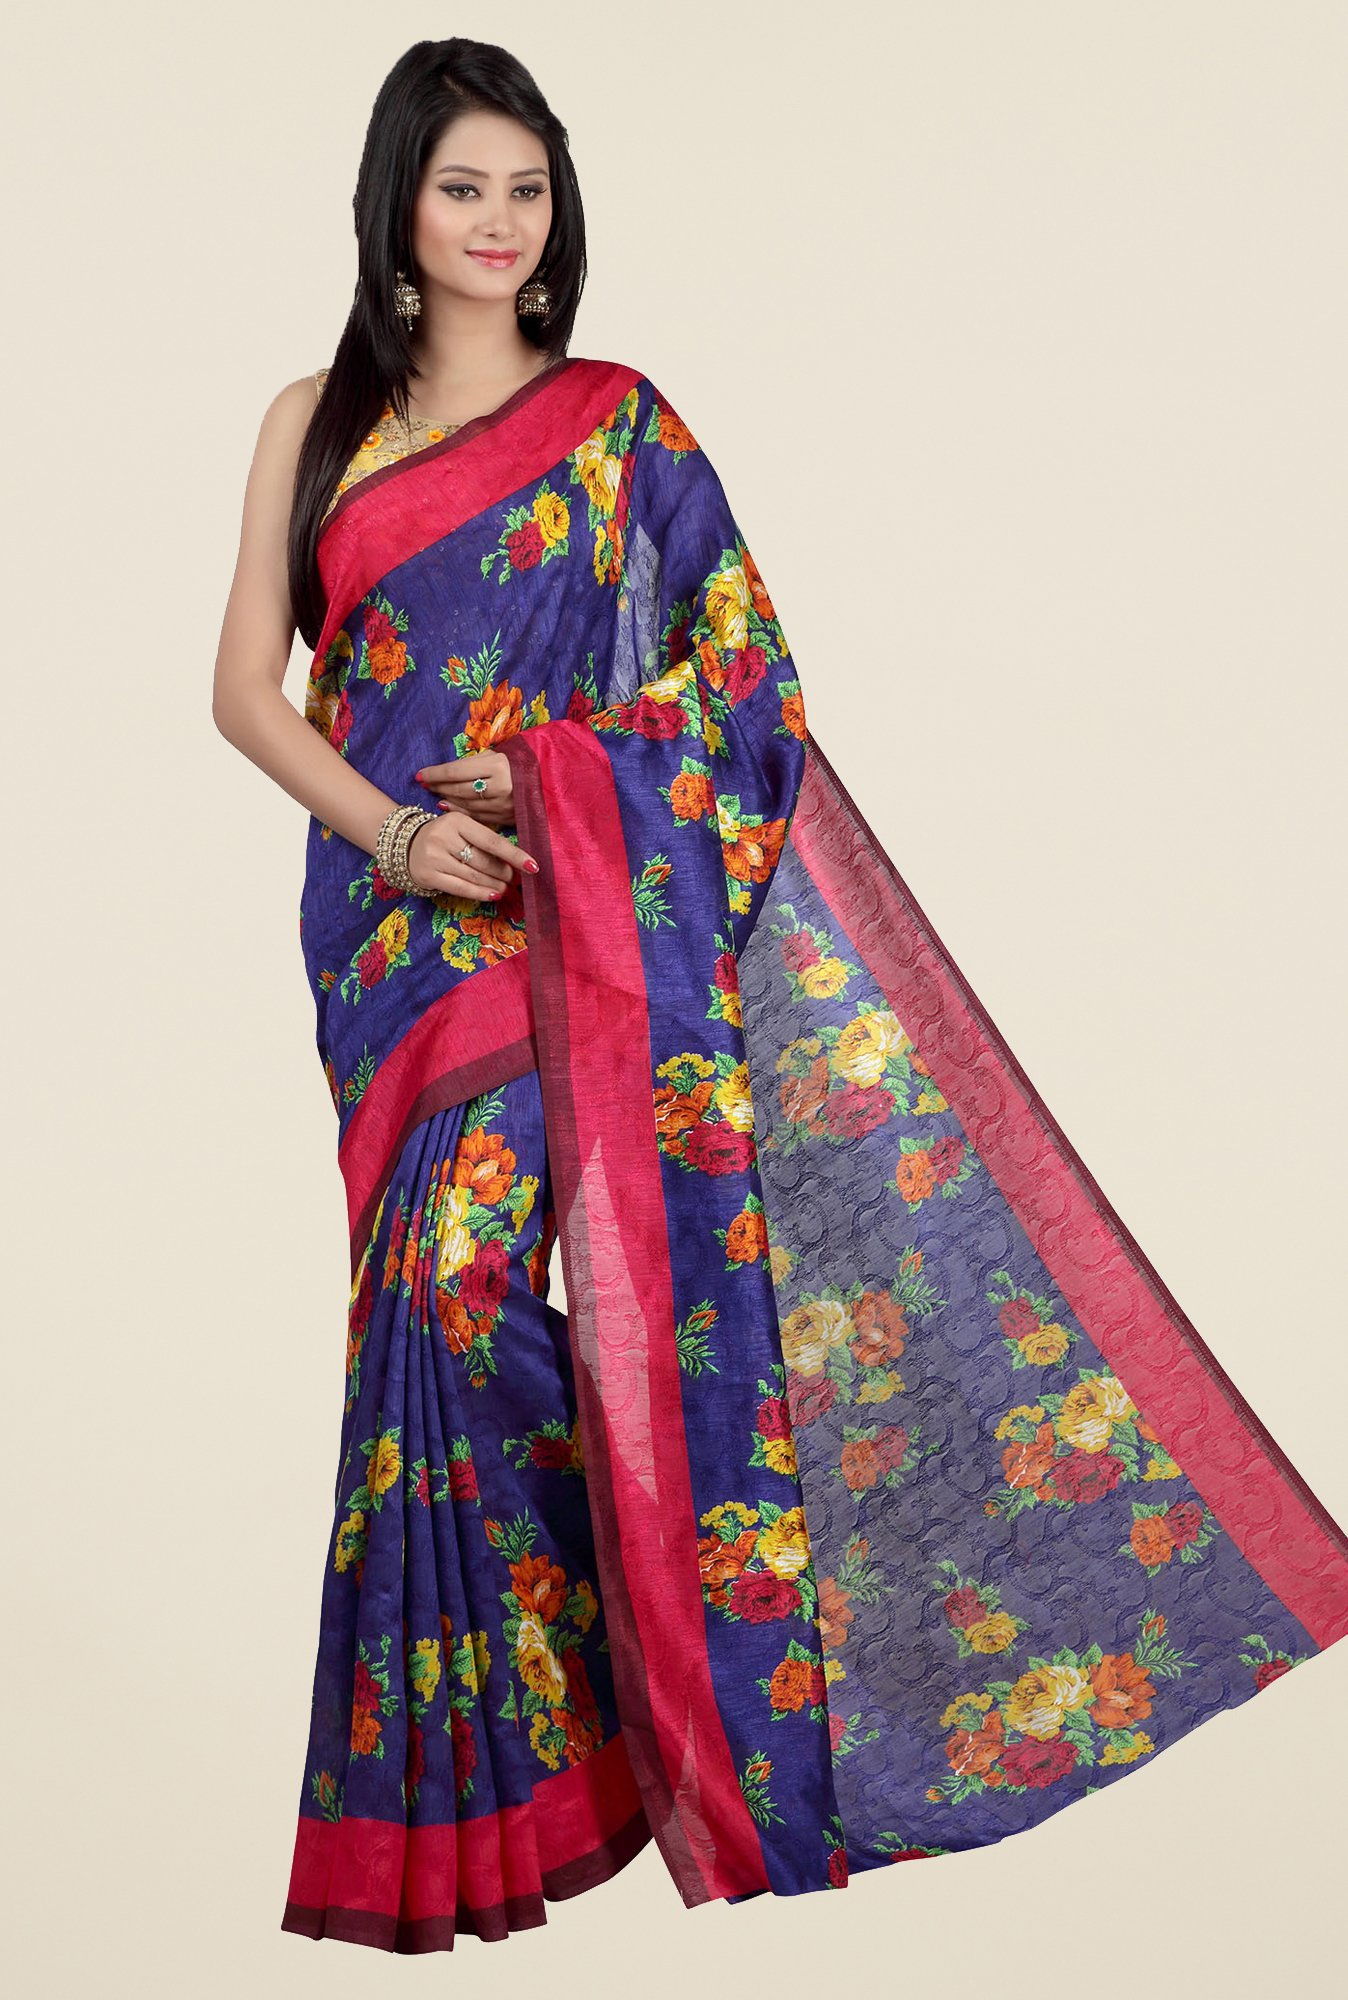 Jashn Blue and Pink Floral Print Jacquard Saree